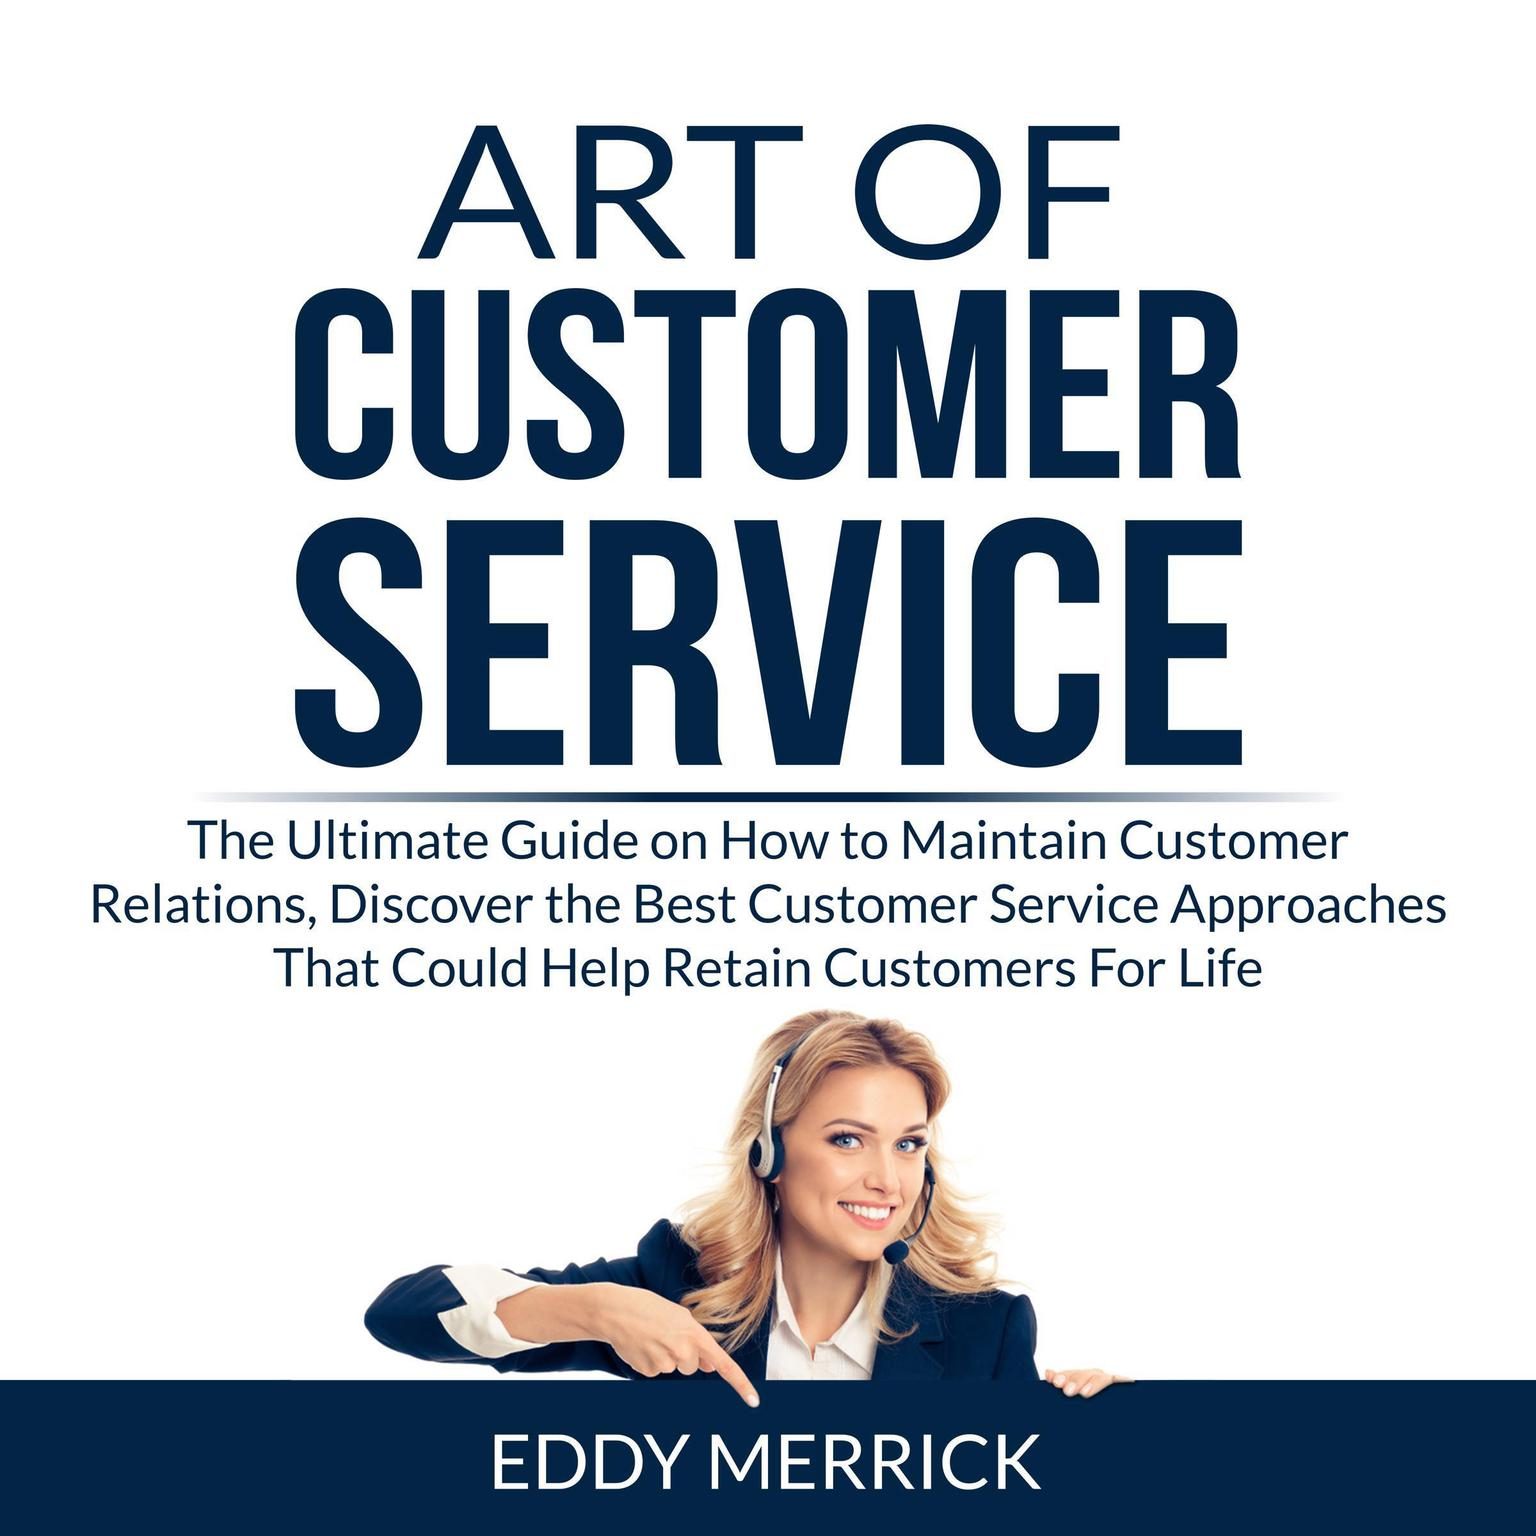 Art of Customer Service: The Ultimate Guide on How to Maintain Customer Relations, Discover the Best Customer Service Approaches That Could Help Retain Customers For Life Audiobook, by Eddy Merrick